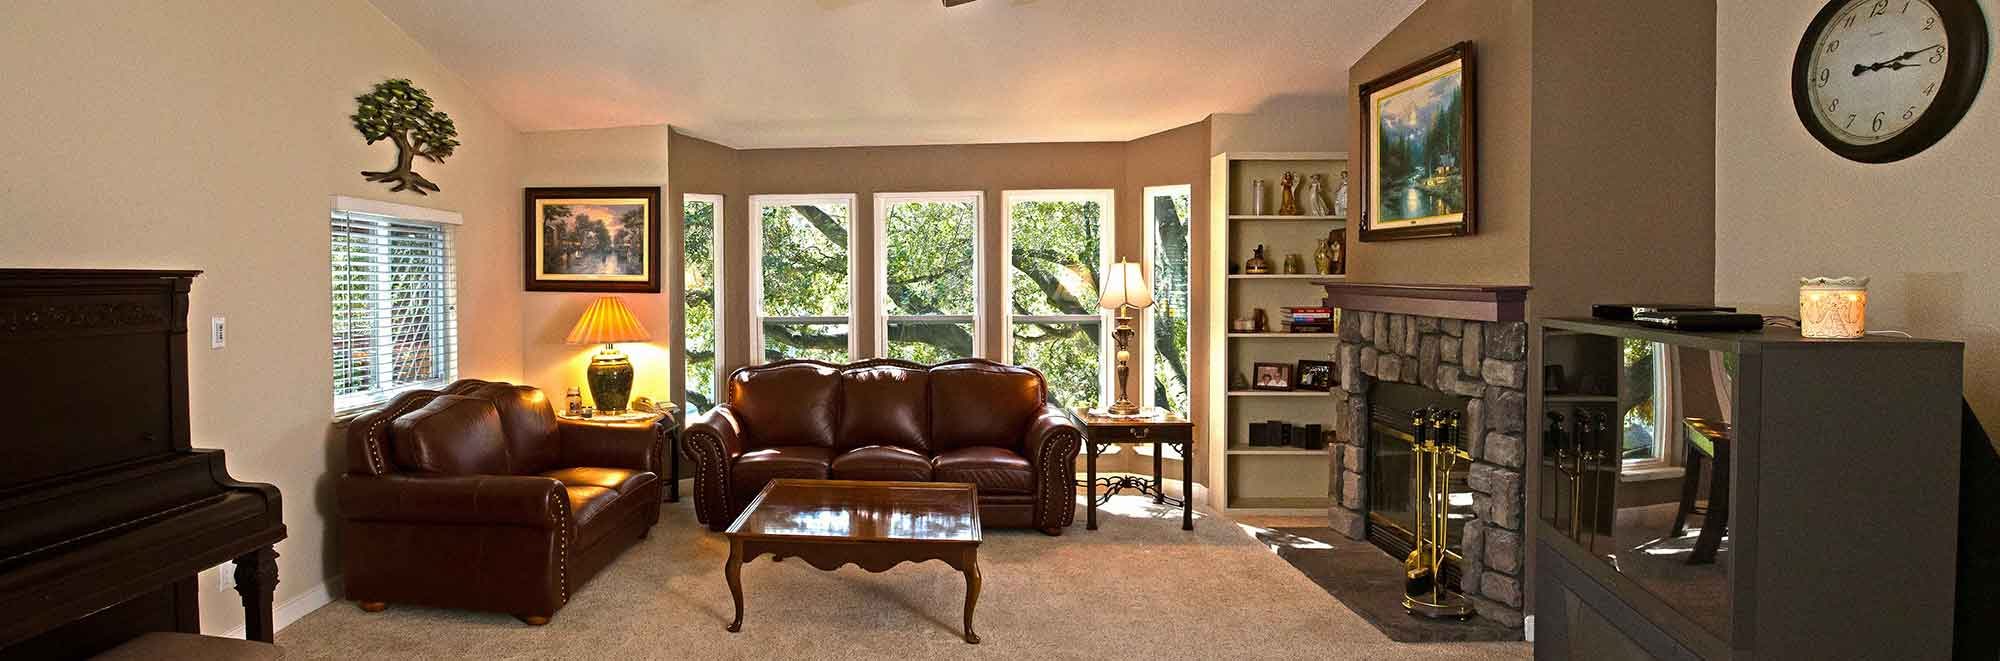 brentwood ca real estate